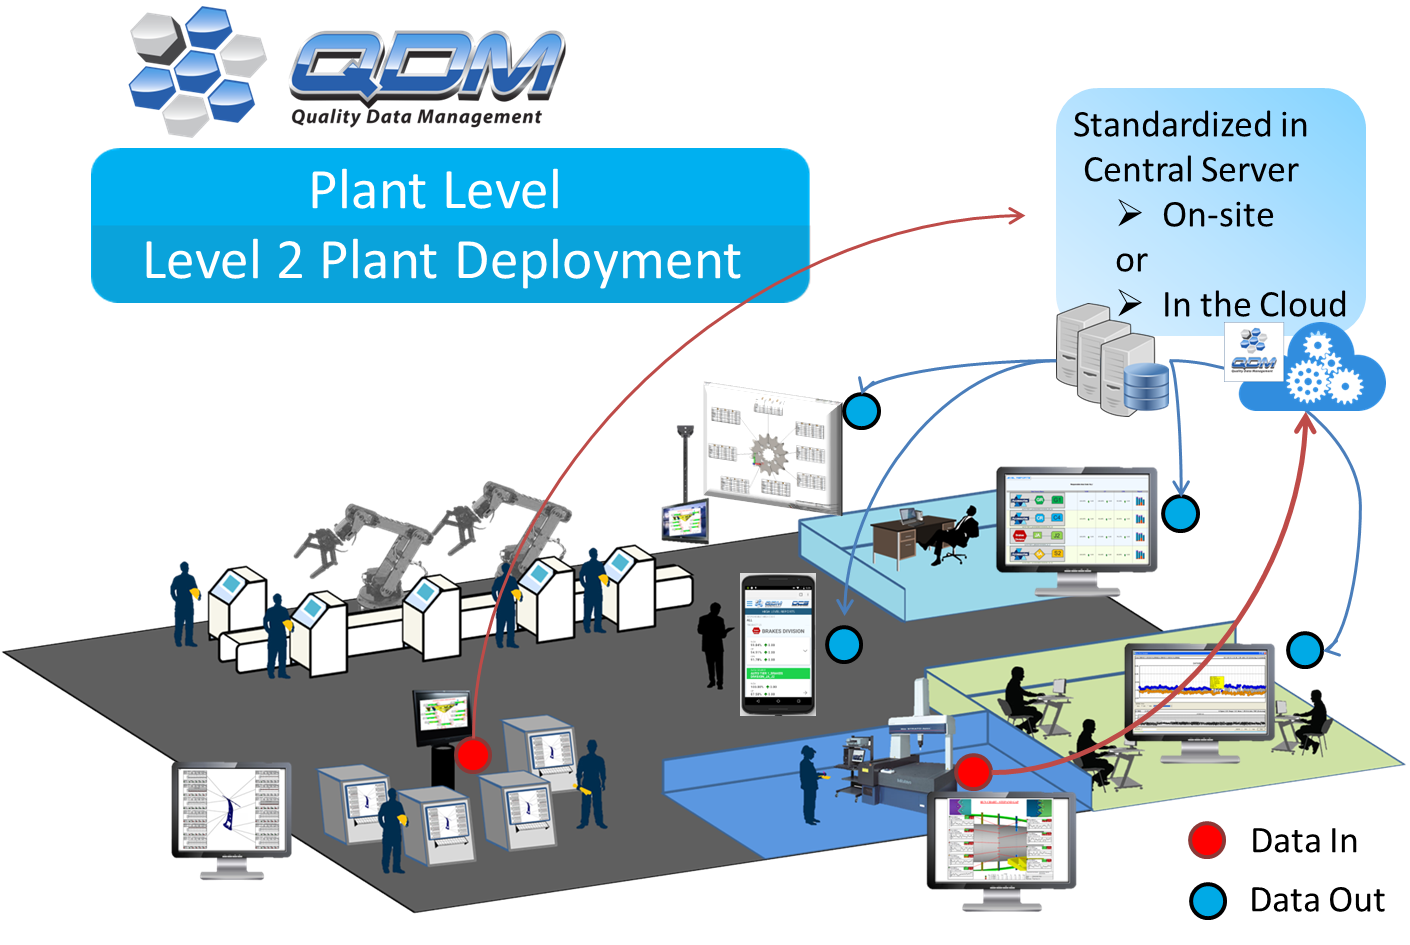 qdm-system-plant-level-deployment-data-flow